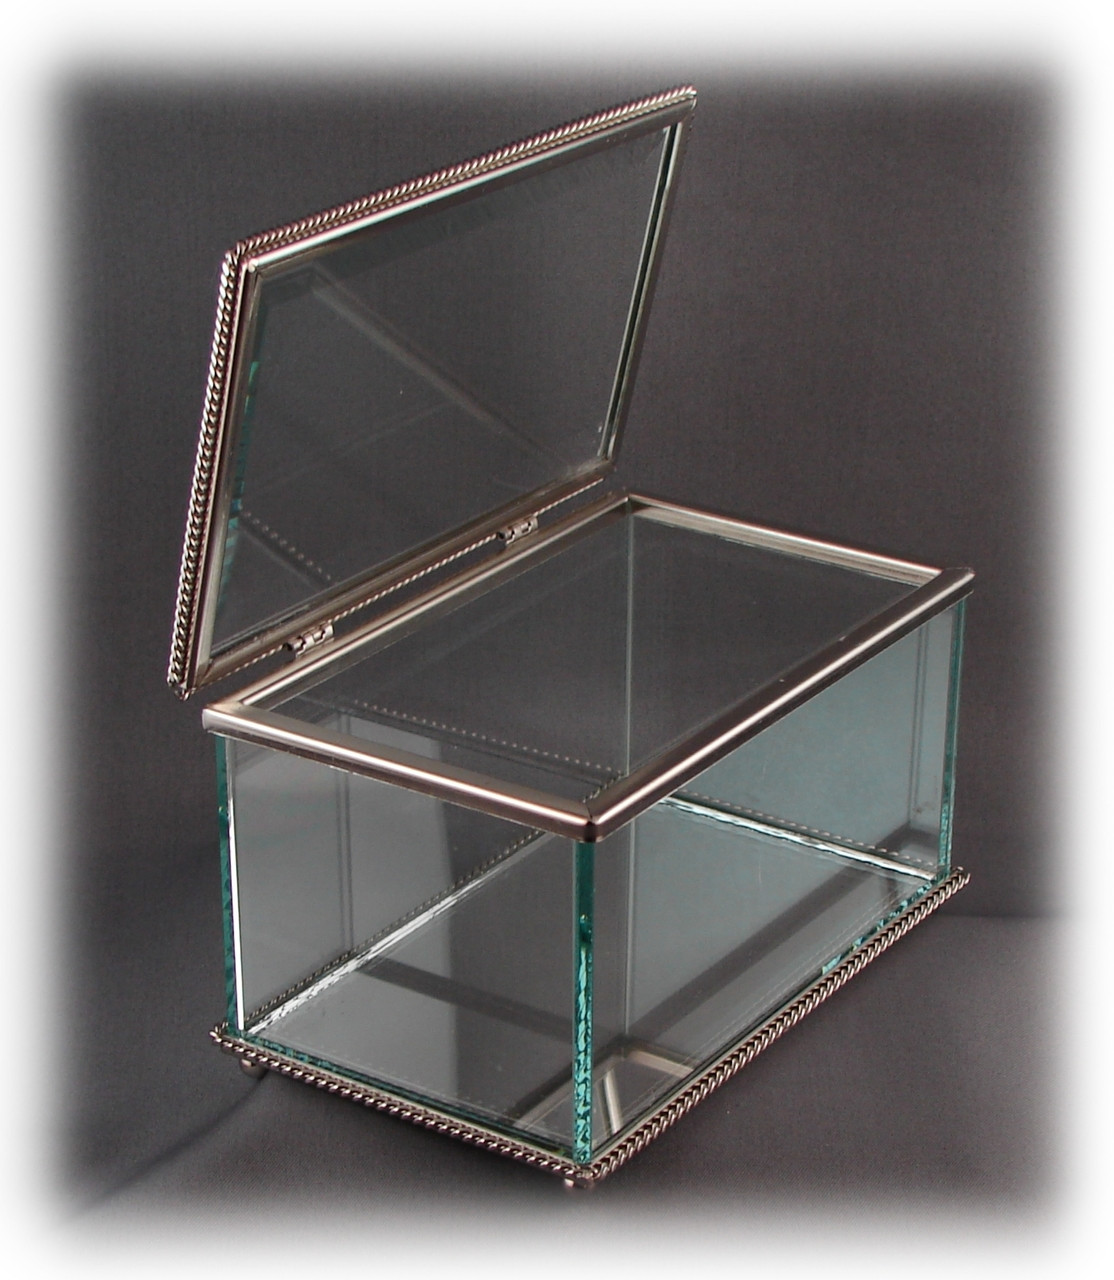 "Glass Jewelry Box, Engravable Glass, w/Non-Tarnishing Silver Trim, 5-1/4"" x 3-3/4"" x 2-3/4"" Tall, w/Hinged Glass Top"